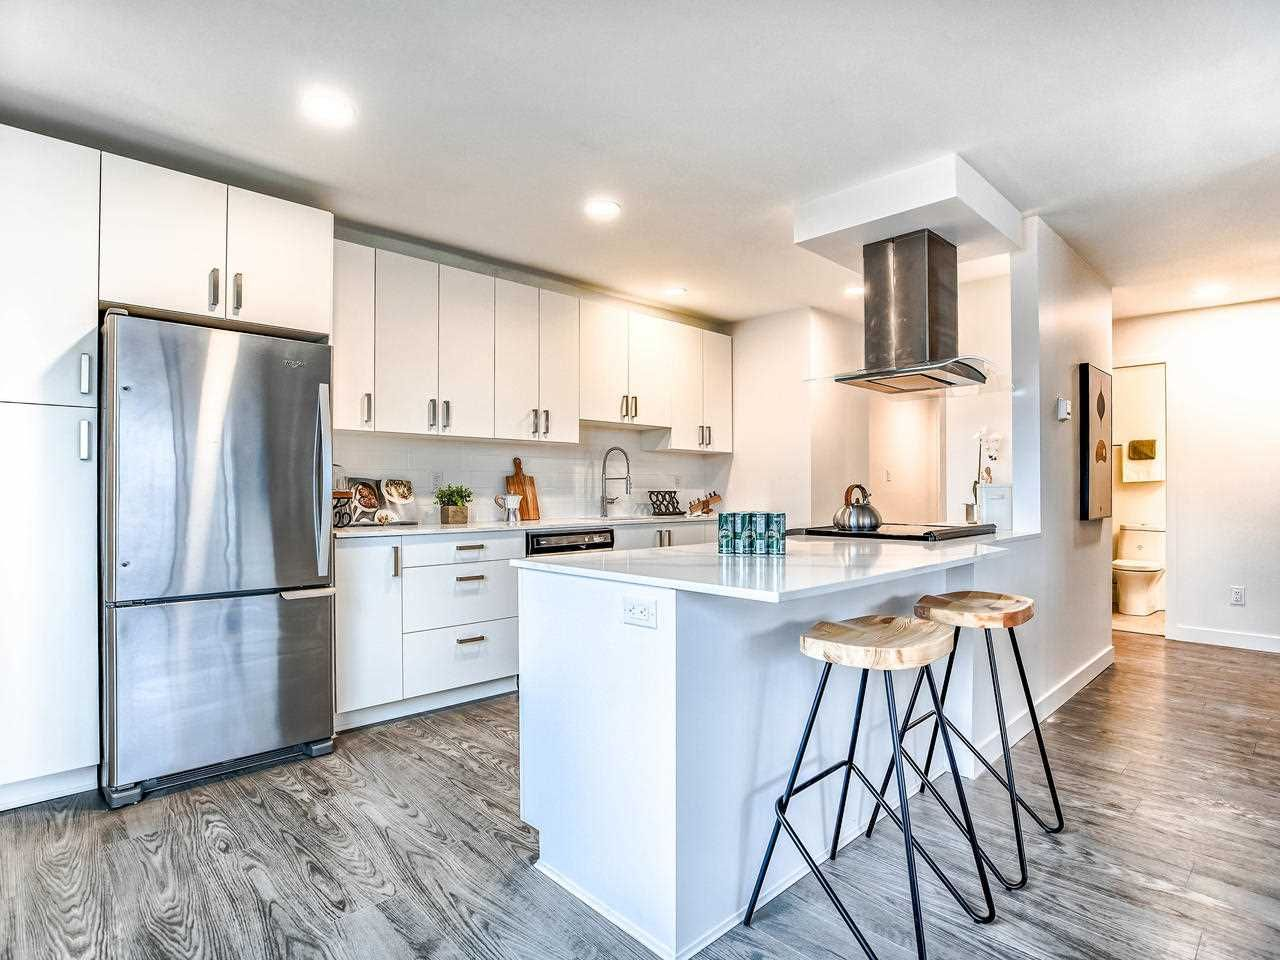 """Main Photo: 104 4625 GRANGE Street in Burnaby: Forest Glen BS Condo for sale in """"Edgeview"""" (Burnaby South)  : MLS®# R2486841"""